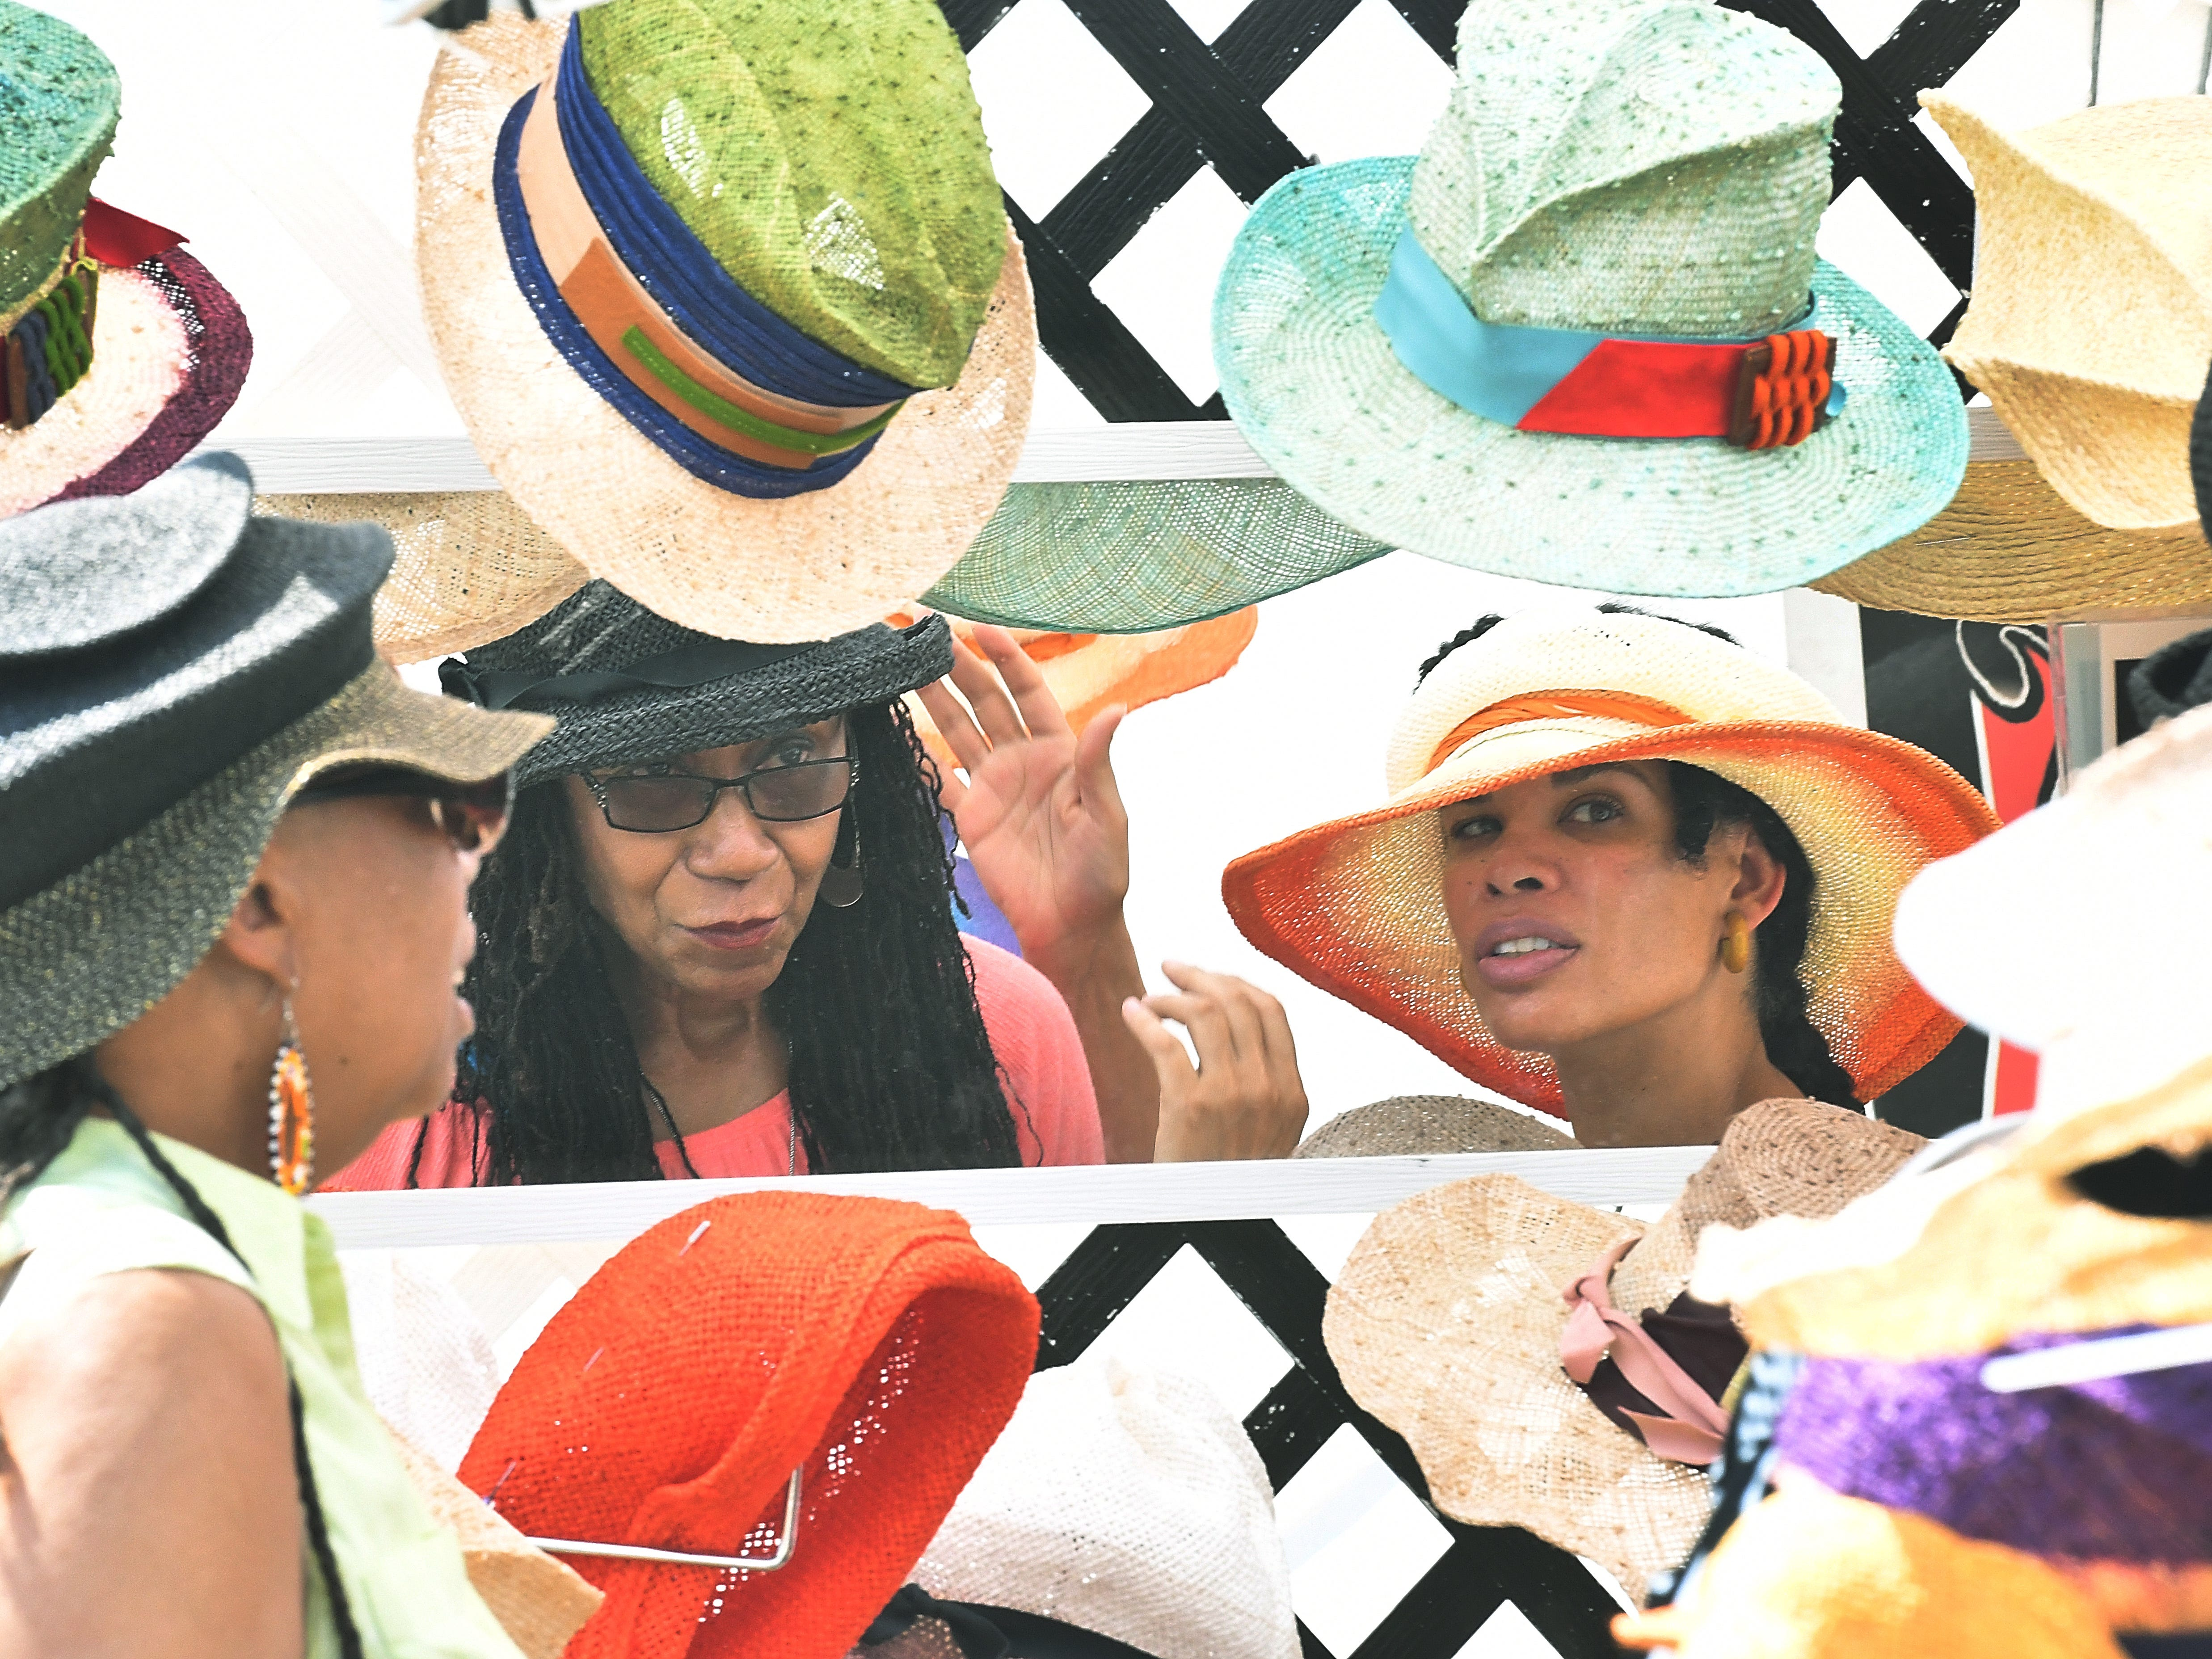 Sherallyn Buyck gets some help from Ella Isaac of L.I.P.S. Hats (Living In Perfect Style) trying on hats at her booth at the Belle Isle Art Fair.